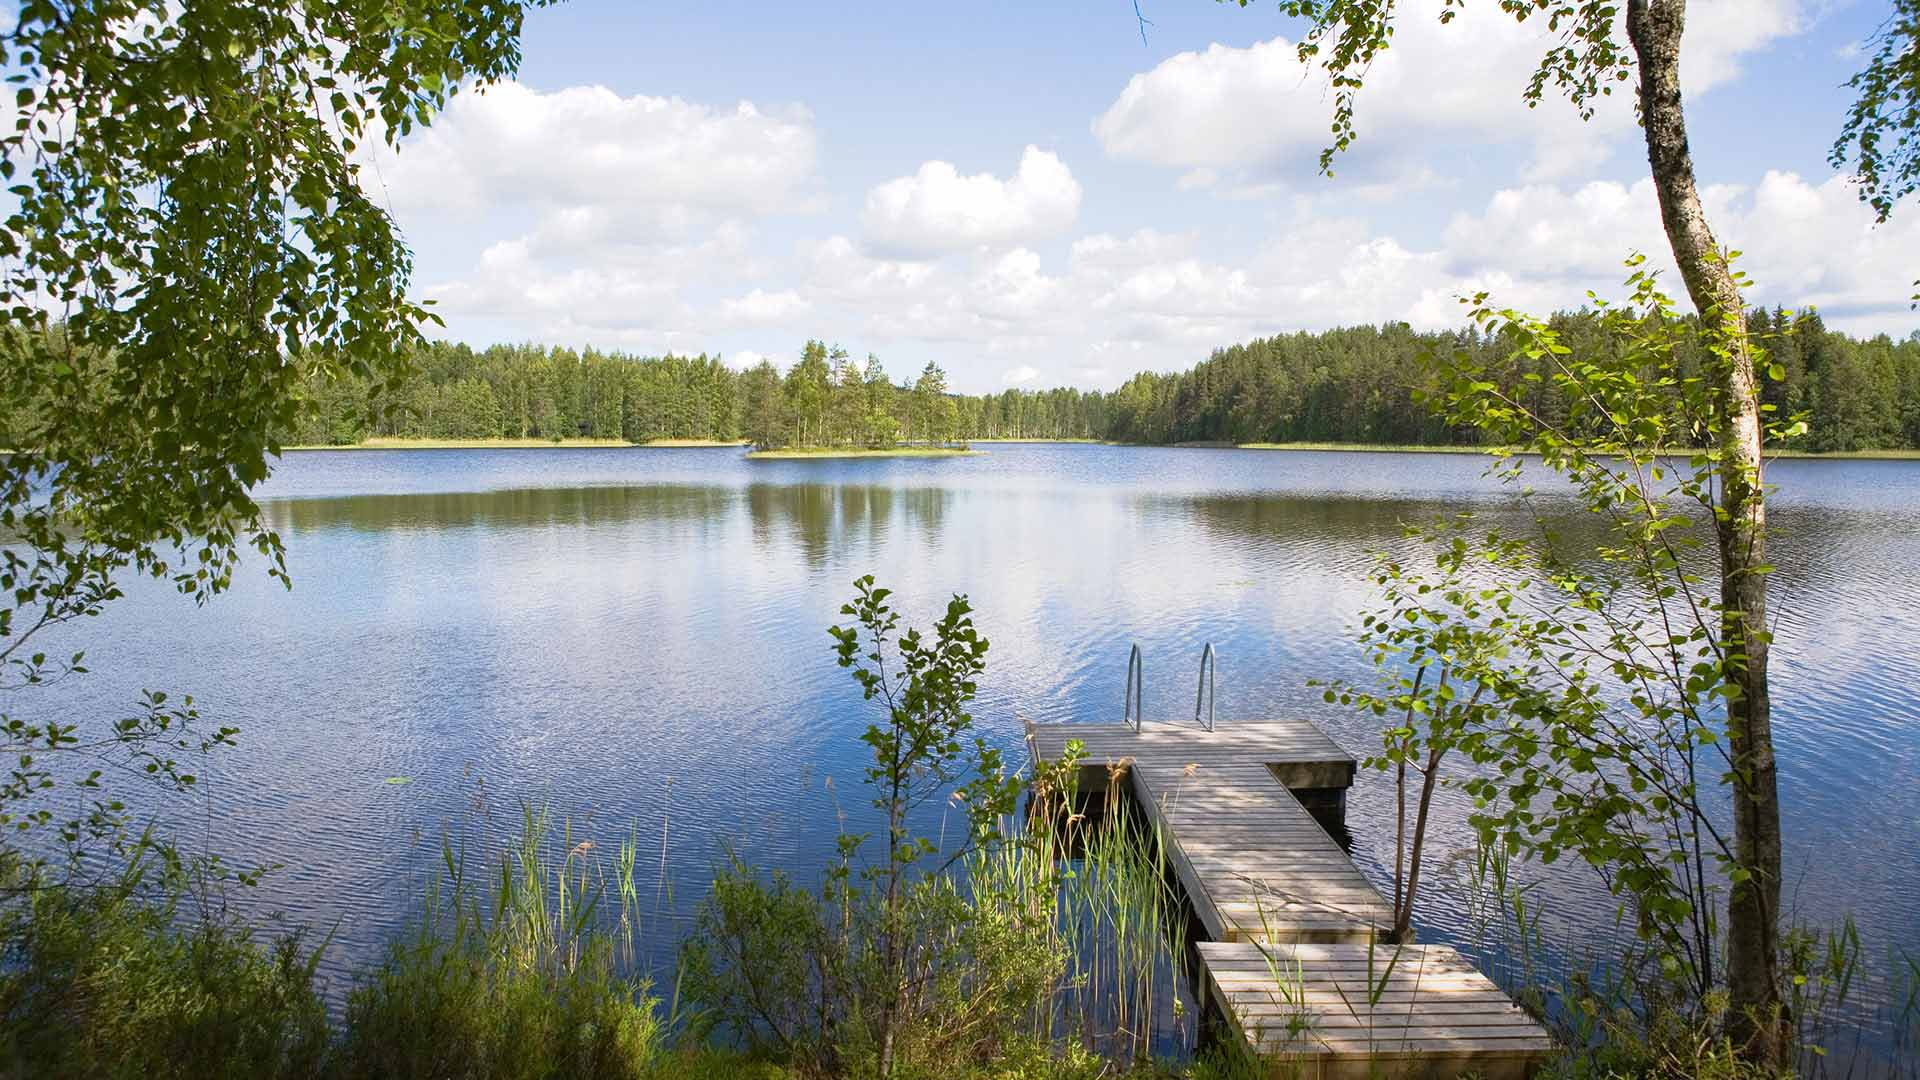 Lake in Finland in summer